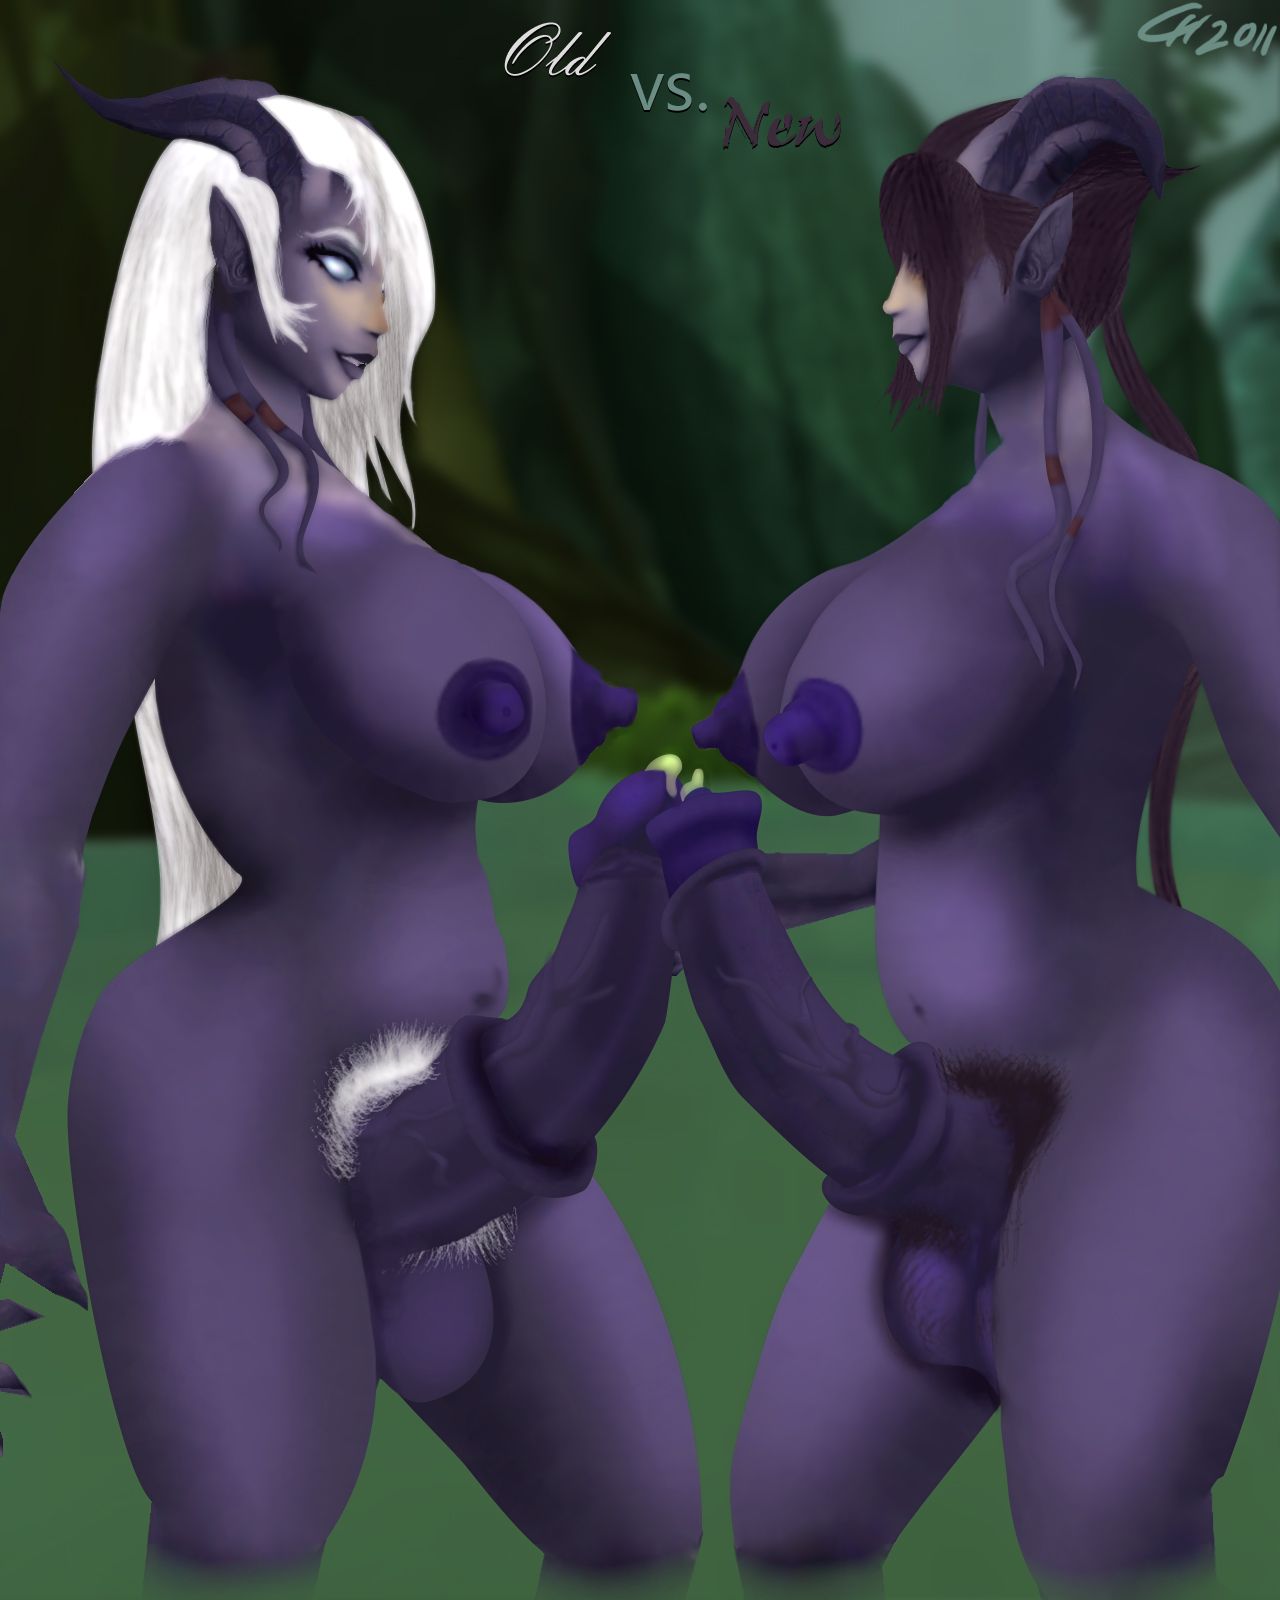 Warcraft porno picsix fucking pictures